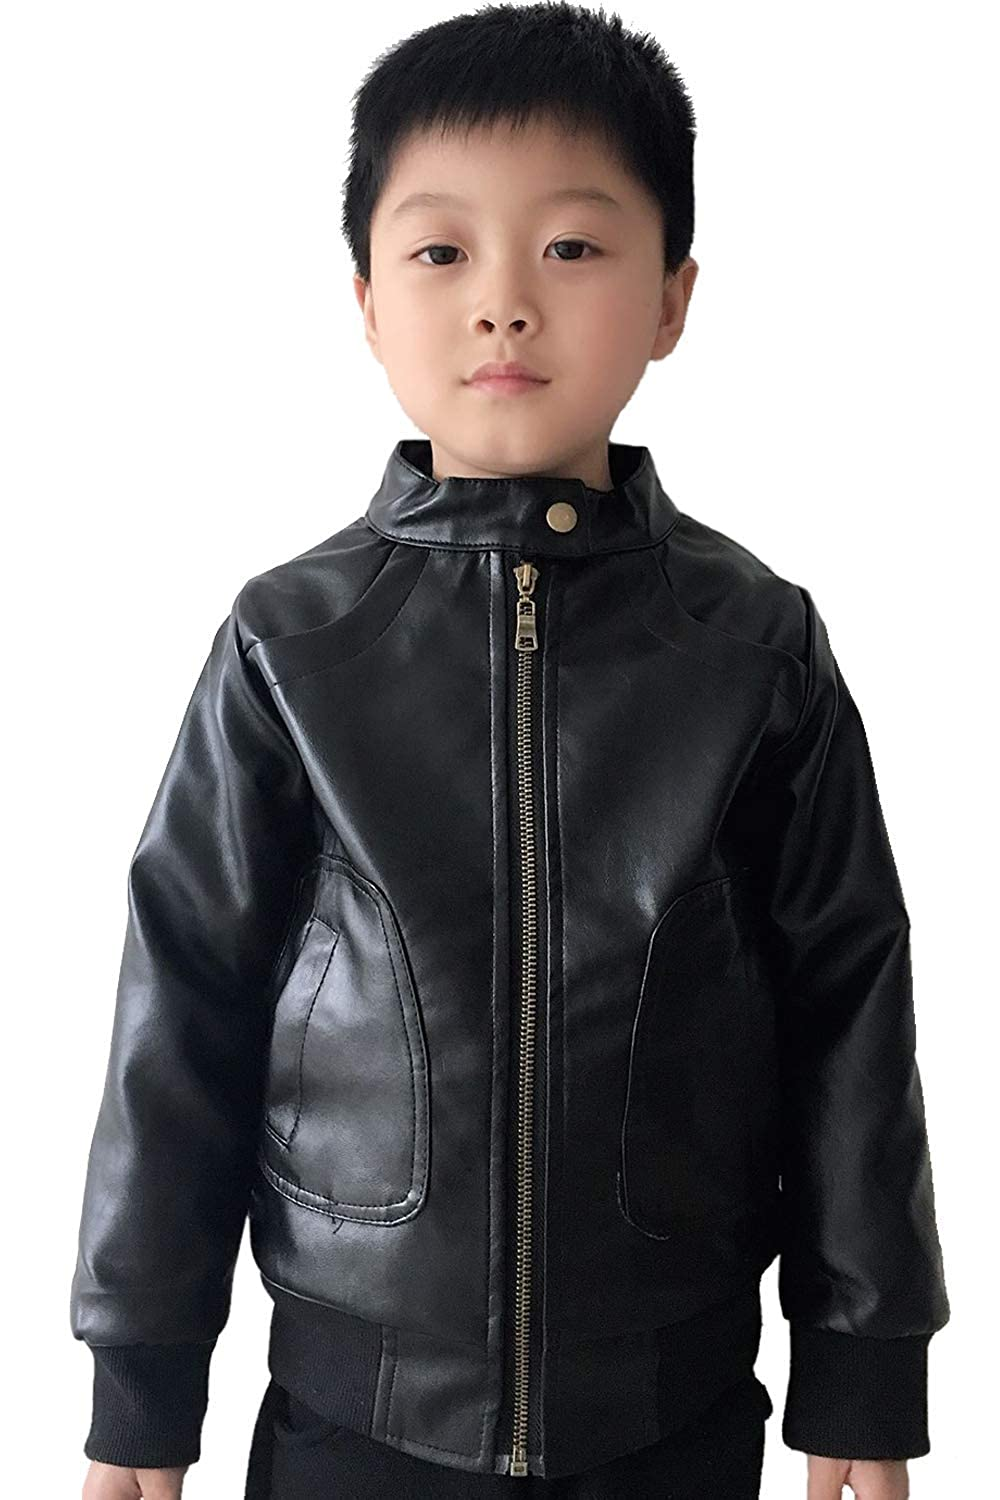 T LUCKFACE Boys Trendy Stand Collar PU Leather Moto Jacket Leather Coat 3-12